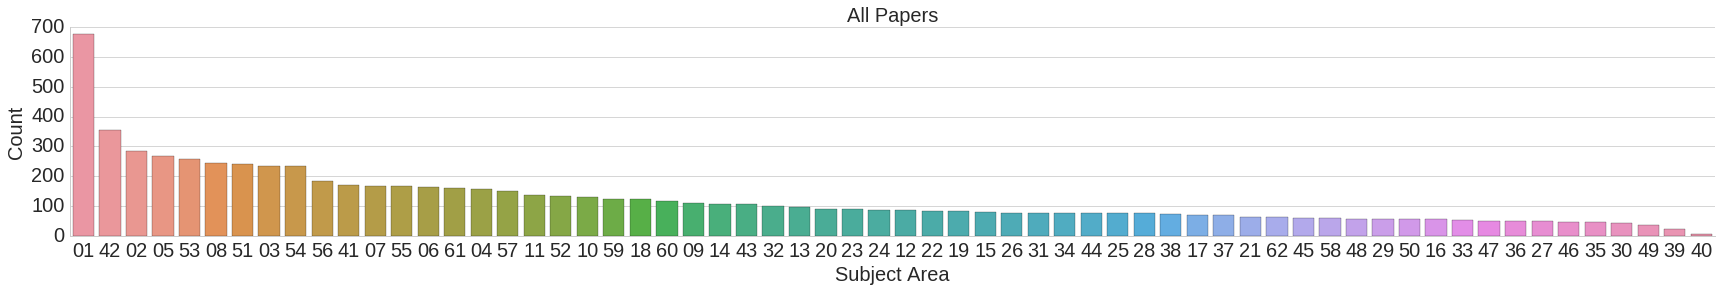 NIPS 2016 areas submitted